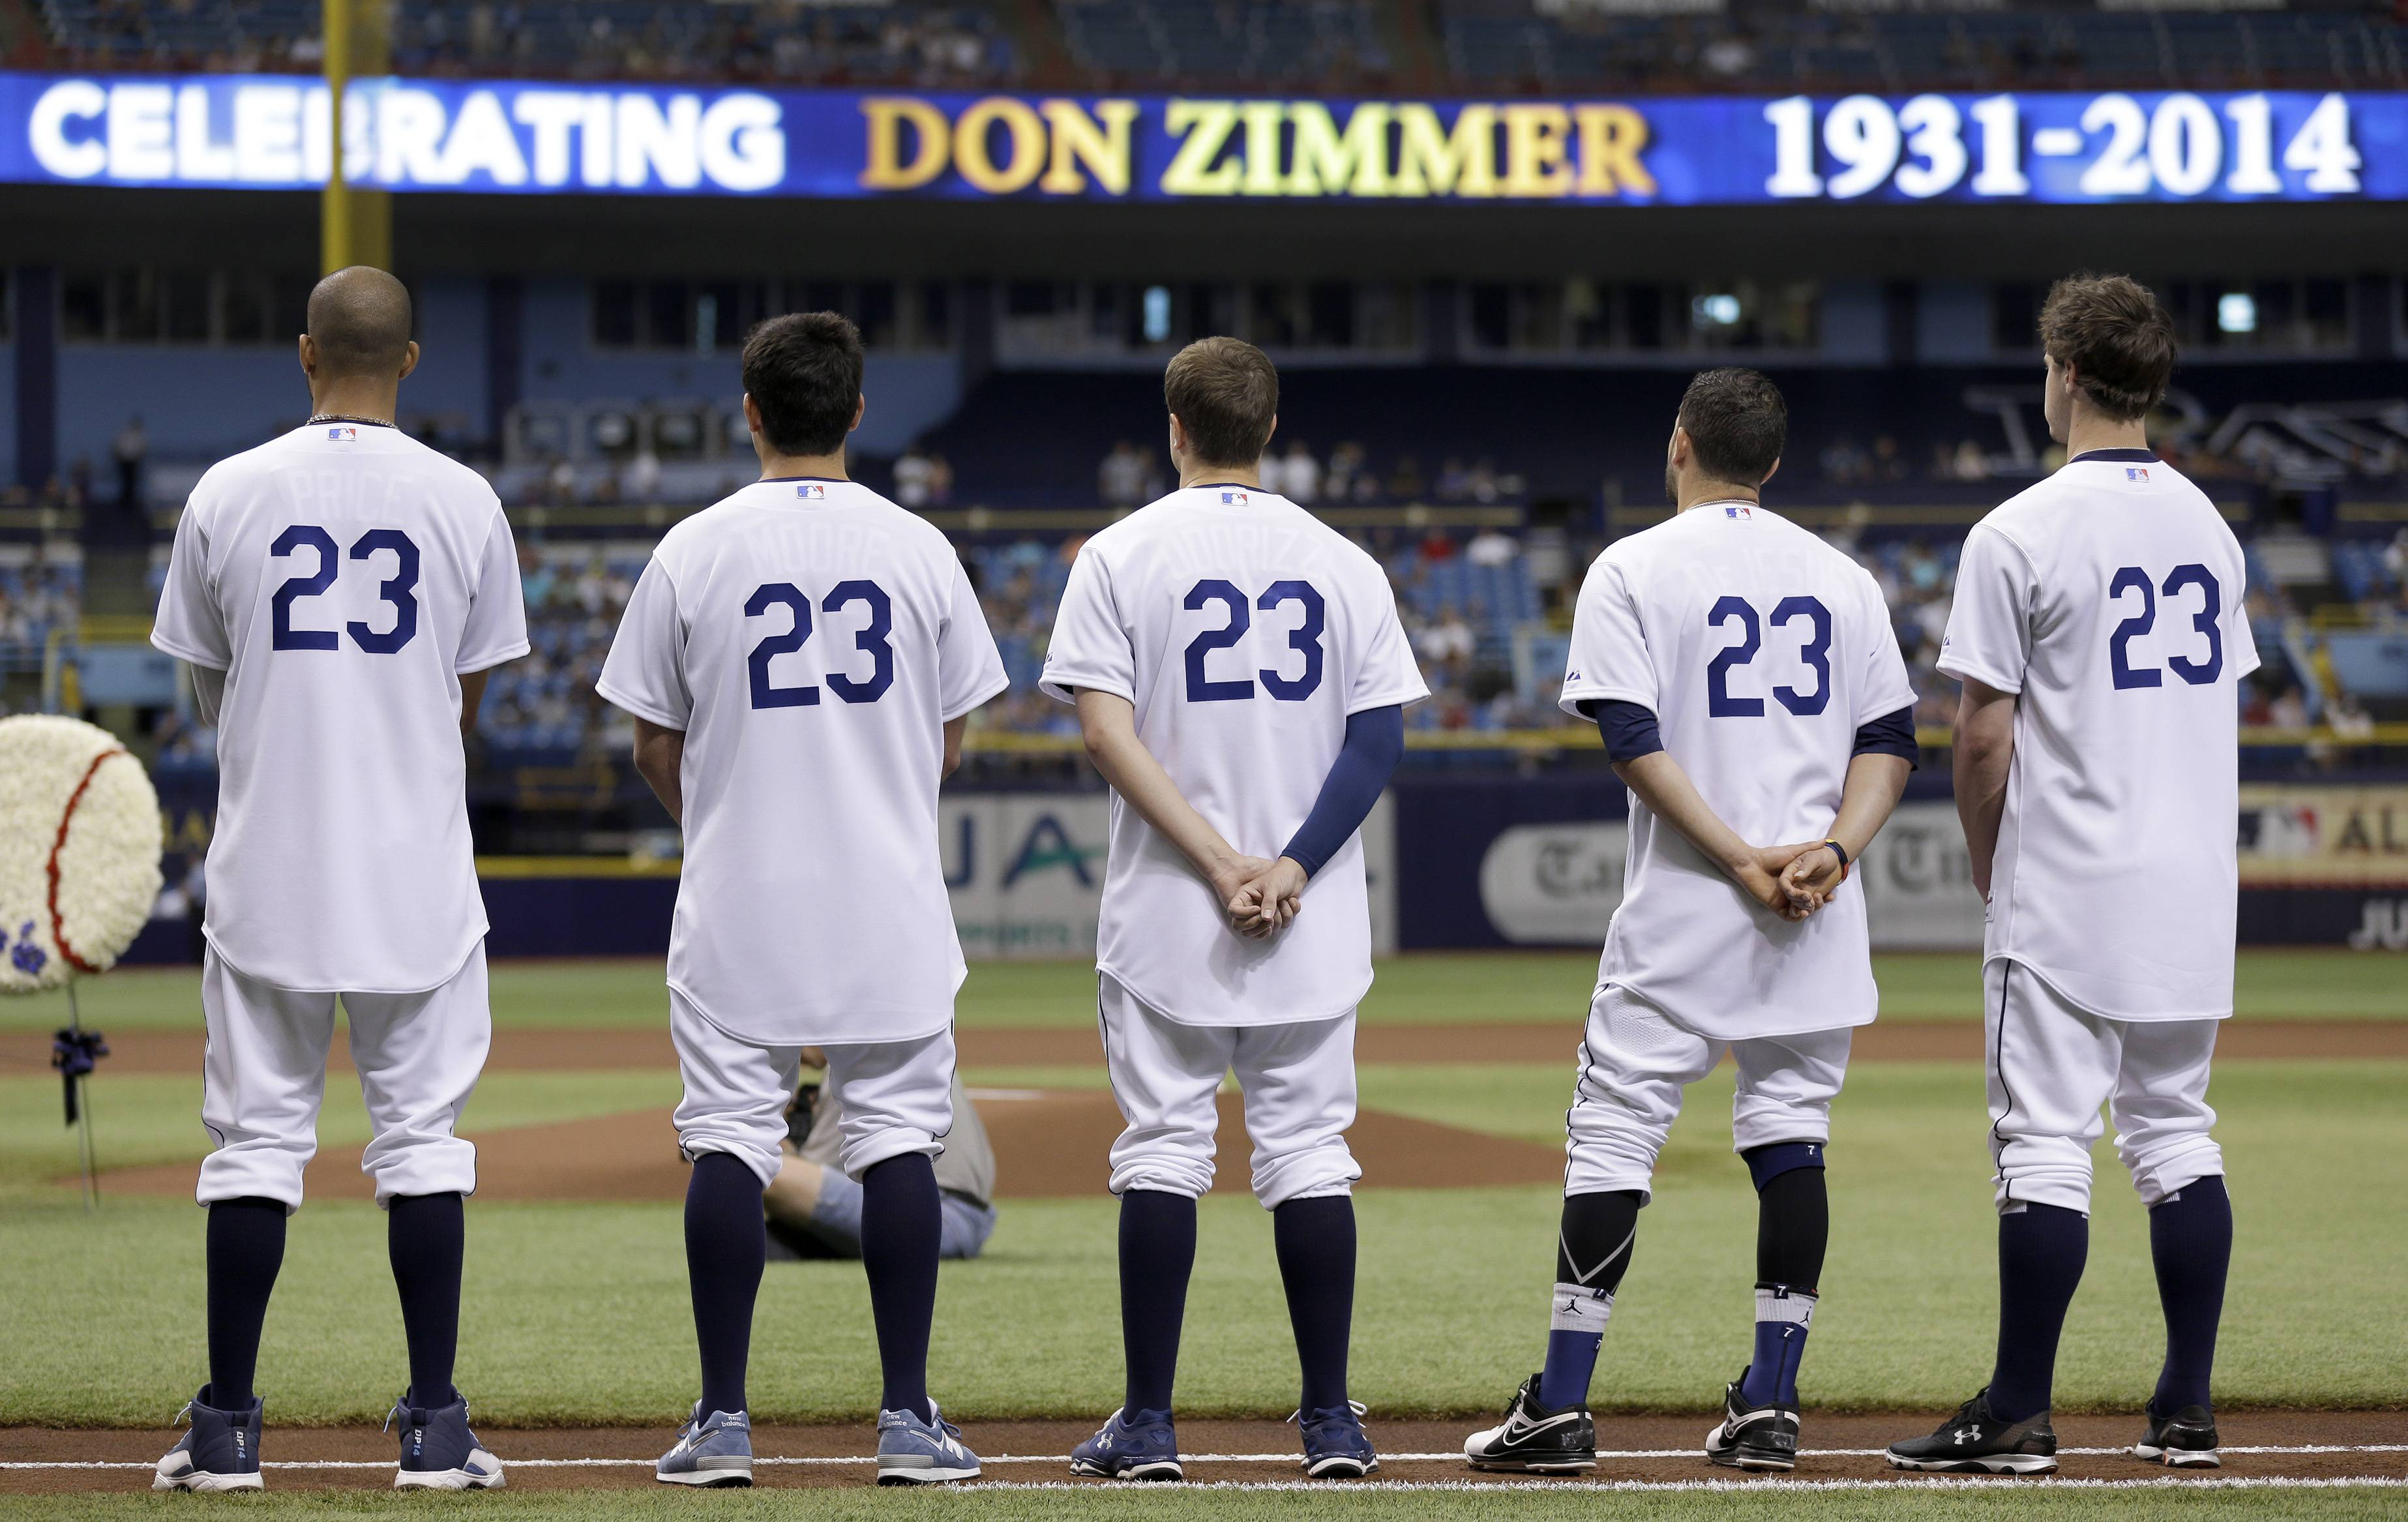 Members of the Tampa Bay Rays wear senior baseball adviser Don Zimmer replica Brooklyn Dodgers uniforms before a baseball game Saturday, June 7, 2014, in St. Petersburg, Fla. Zimmer passed away earlier this week at the age of 83.